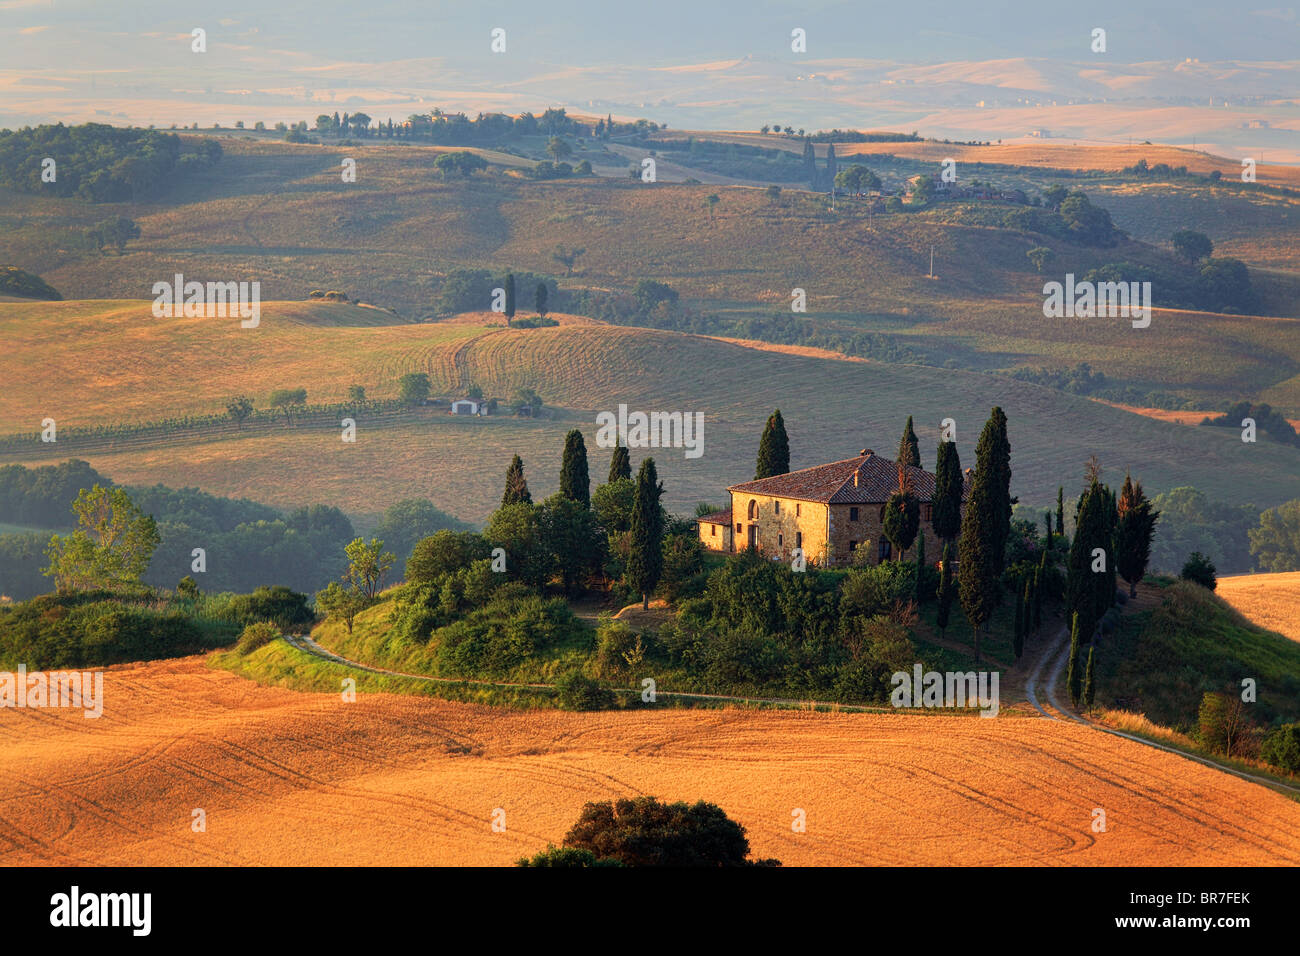 Villa on a hill in Val d'Orcia in Italy's Tuscany province - Stock Image